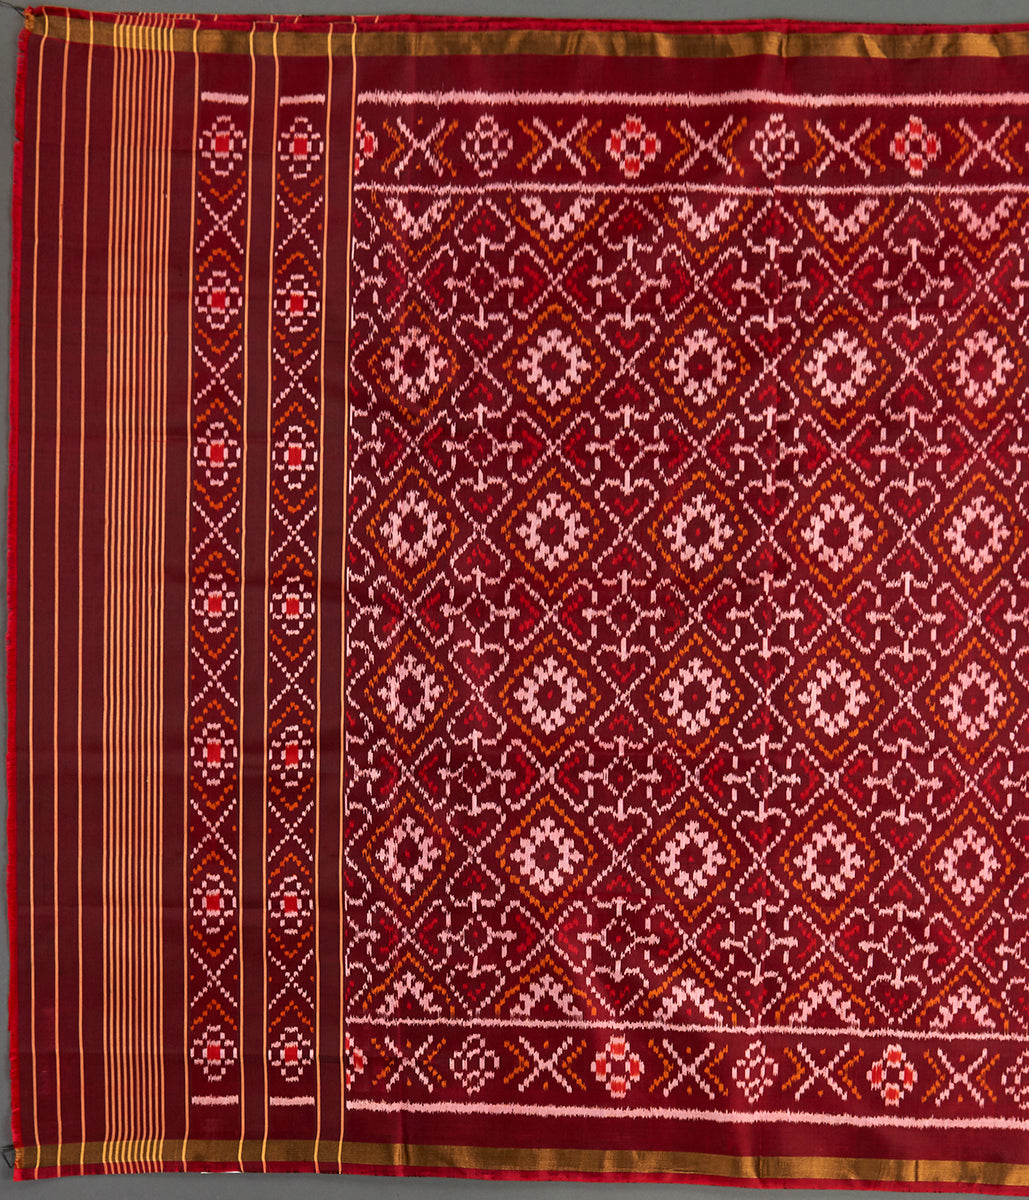 Handwoven Rajkot Silk Patola Dupatta in Brown